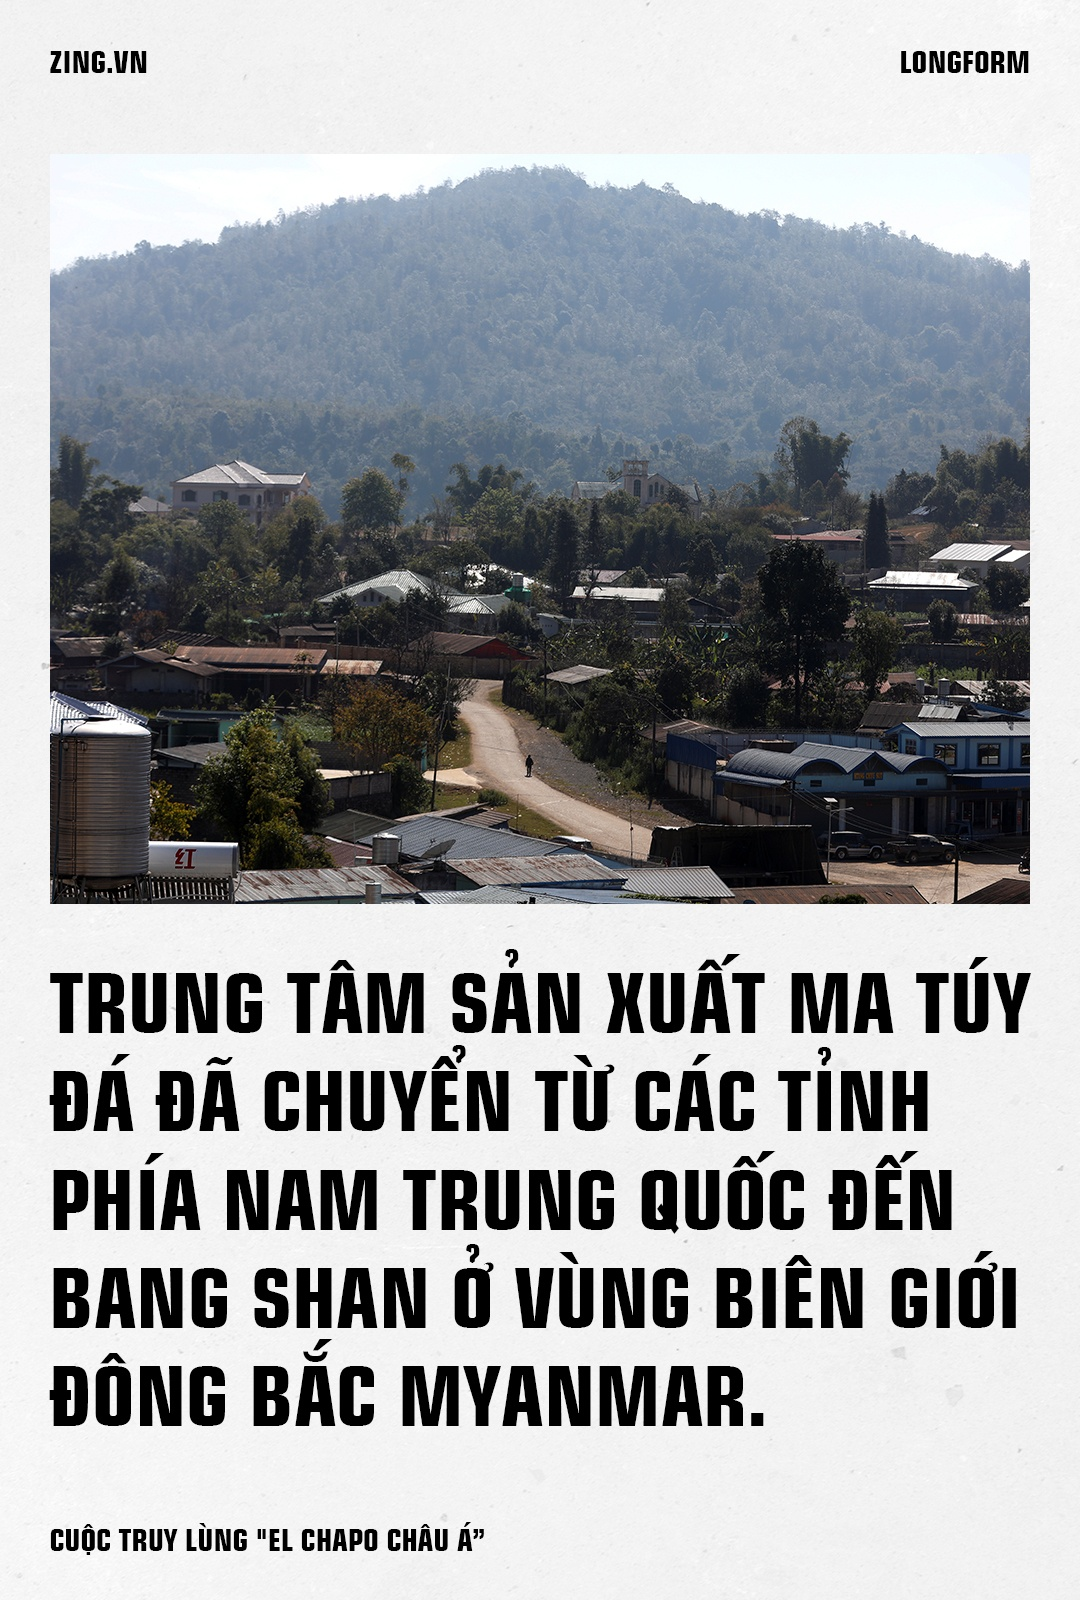 truy lung ong trum ma tuy chau a anh 14